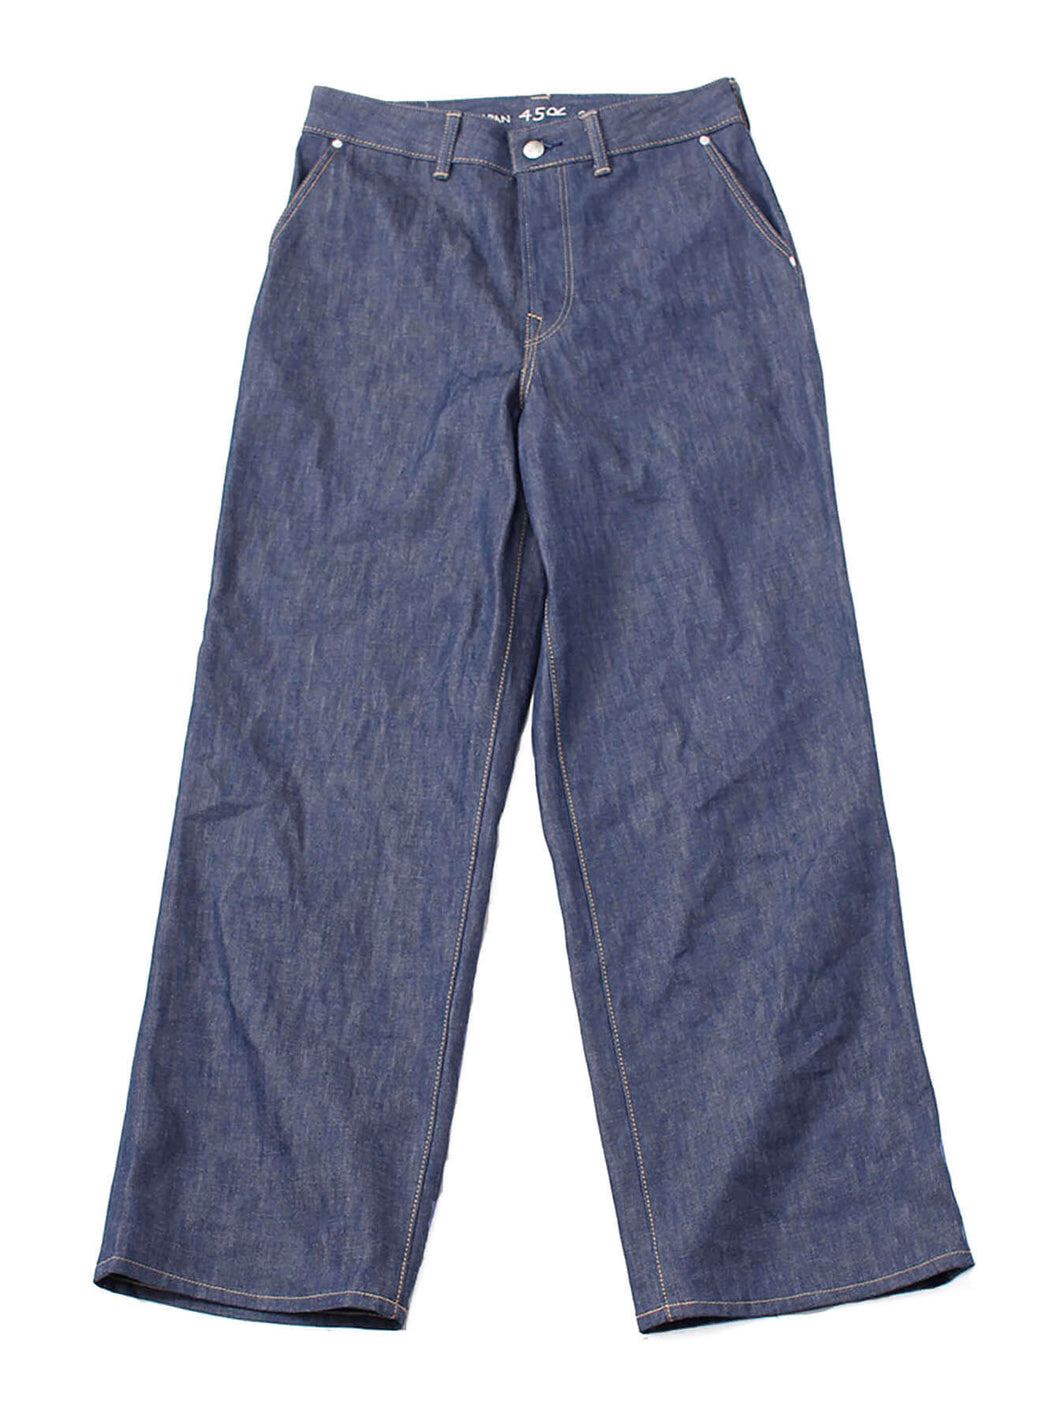 Okome Cotton Denim Charlotte Pants Non Wash in indigo